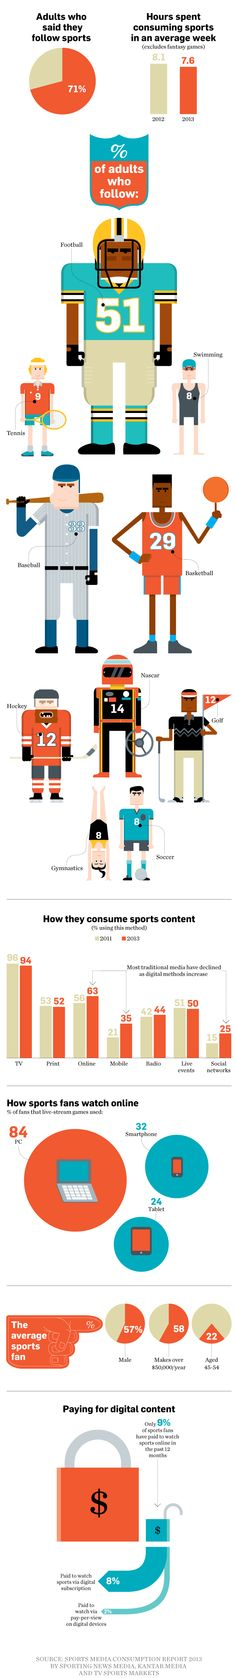 TV Is No. 1 in Sports Viewership, Followed by the Internet | Adweek